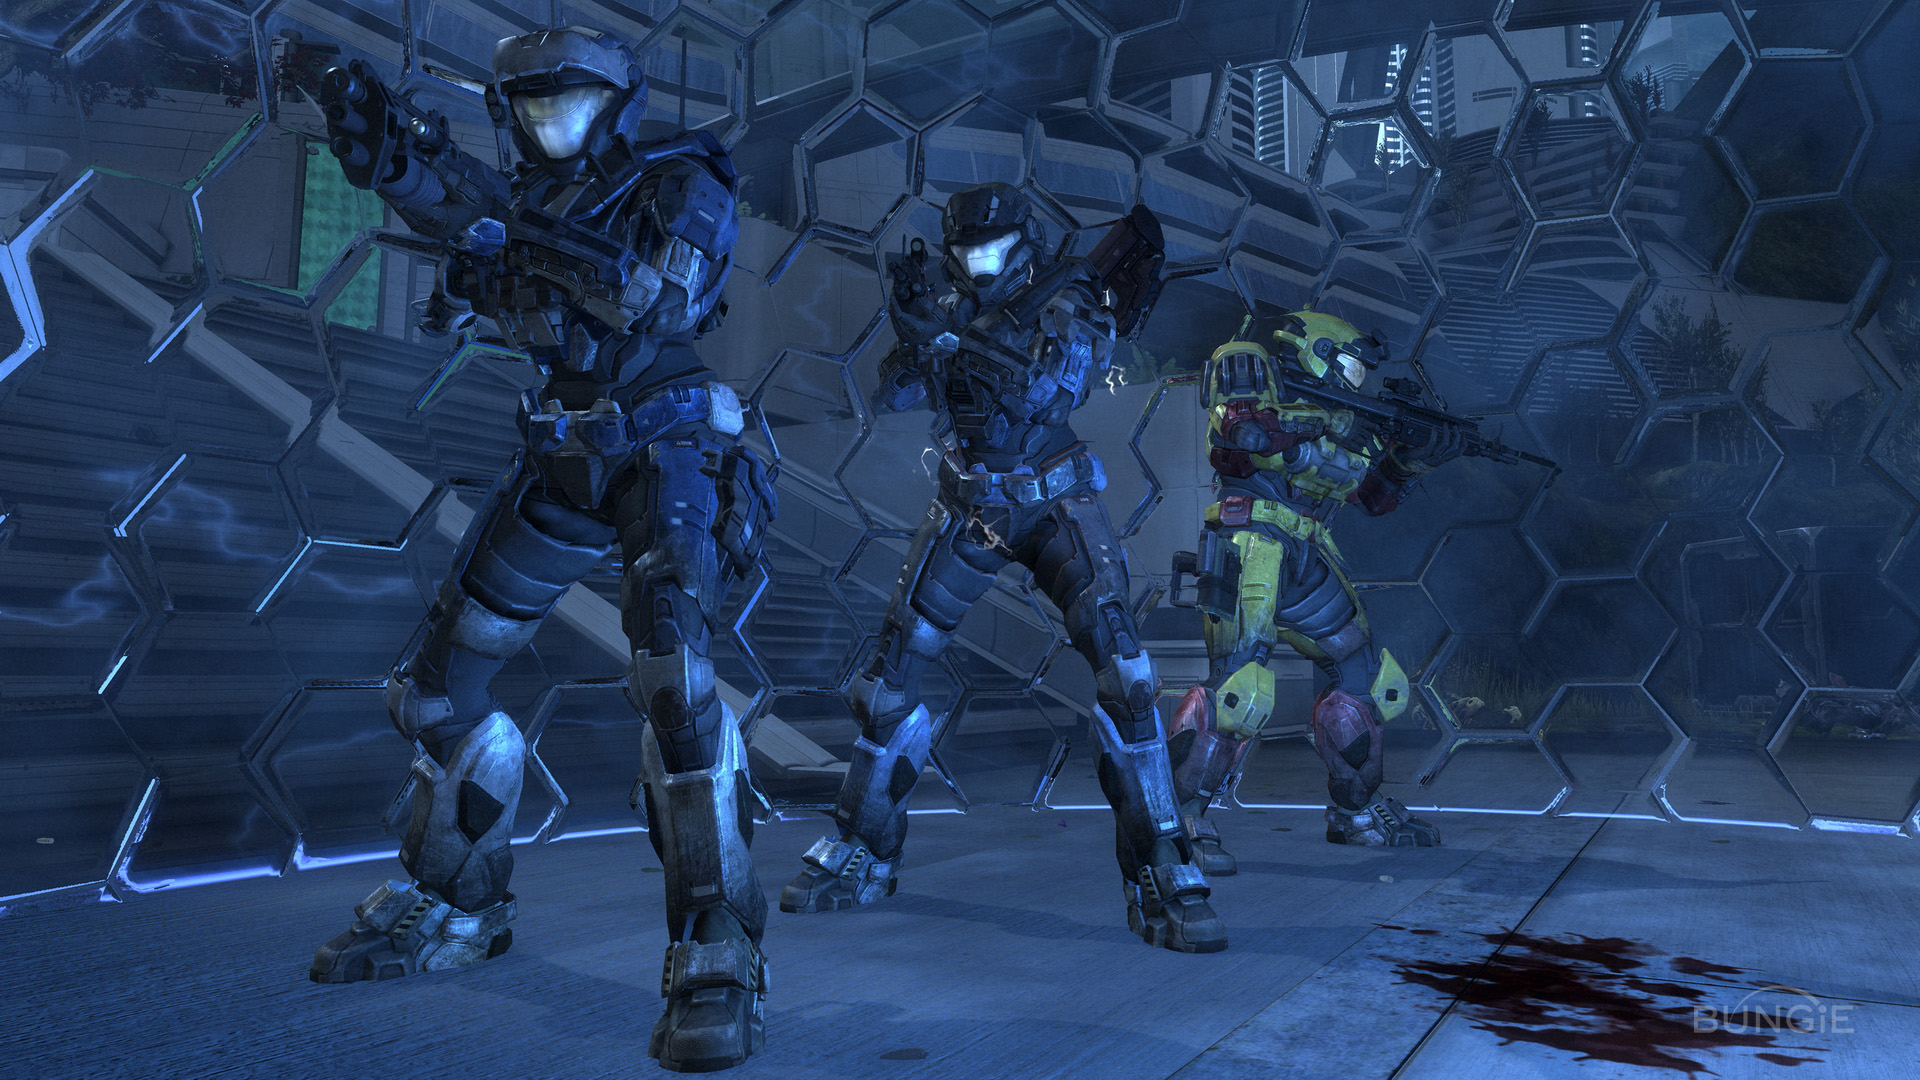 maps needed for halo 3 matchmaking Schism of light kurismicfeb 25, halo 3 race maps browse and halo 3 infection matchmaking race maps everything you need to post your map spawn of saltineaug 5.